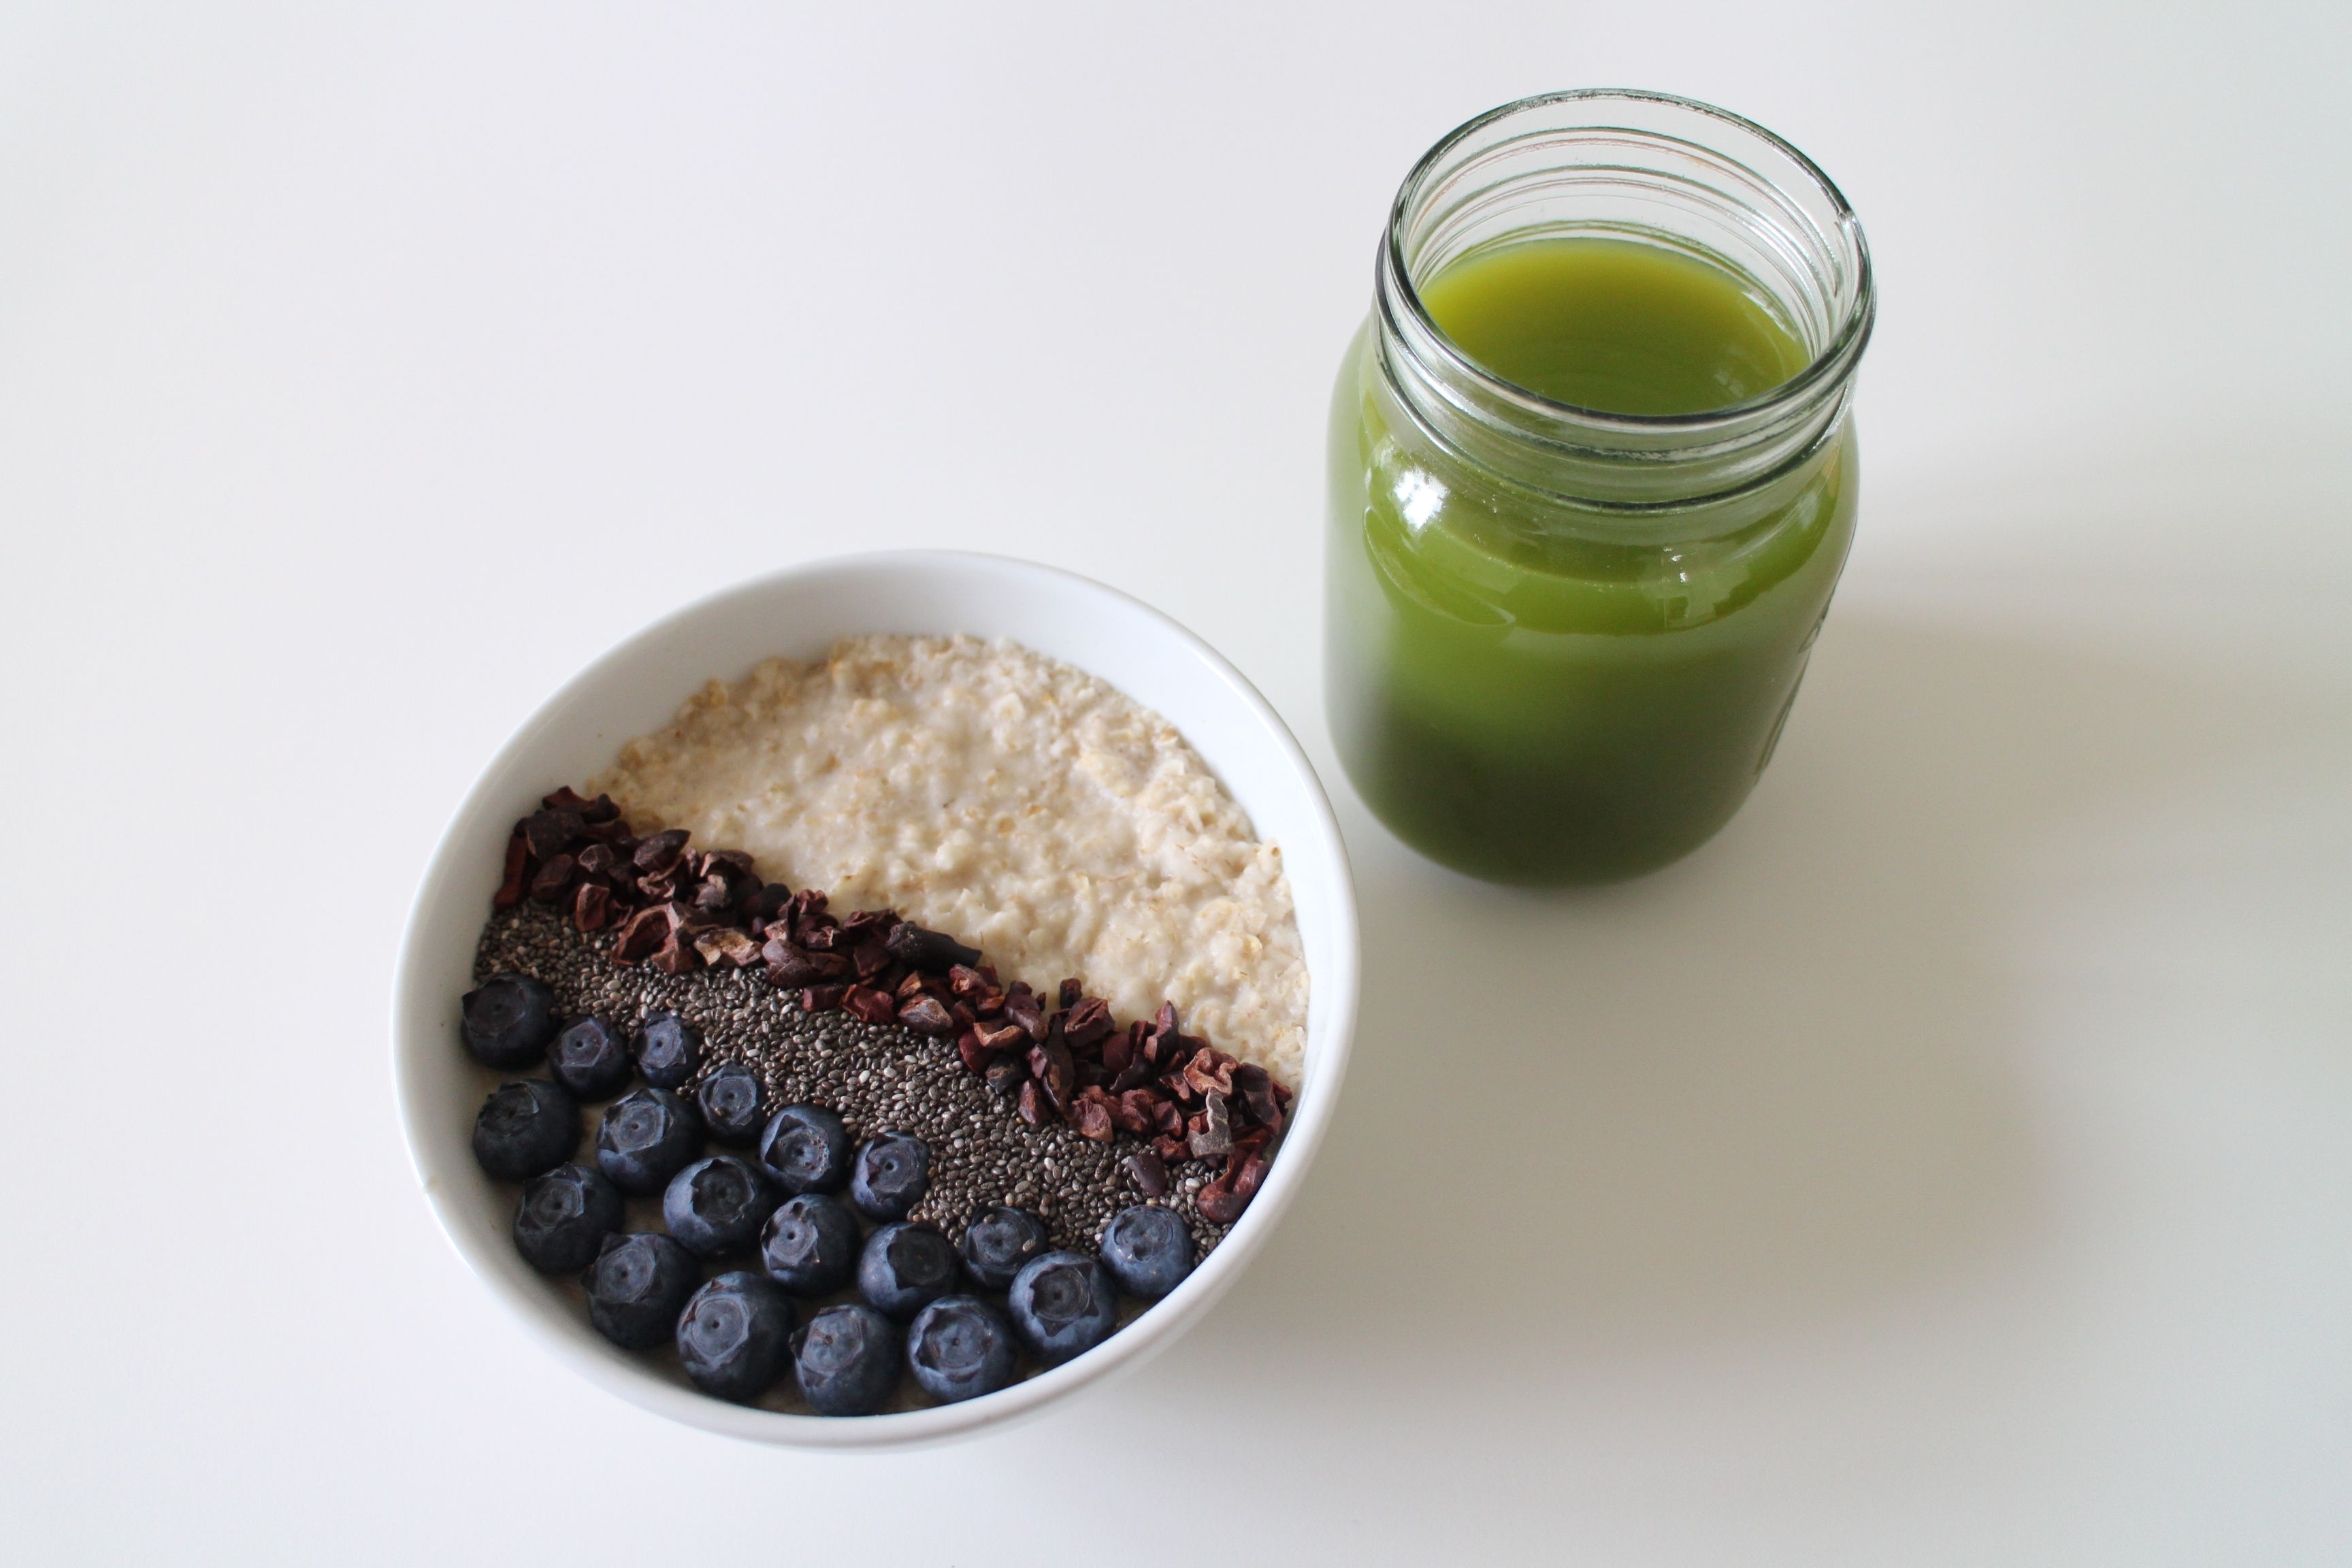 """Breakfast is our favourite meal of the day here at Jurlique so we love this porridge combination shared by the-nutritionista.co.uk  """"I have used almond milk, baobab powder & have topped with blueberries, chia seeds & raw cacao nibs with a side of green juice. So delicious and packed full of goodness."""""""